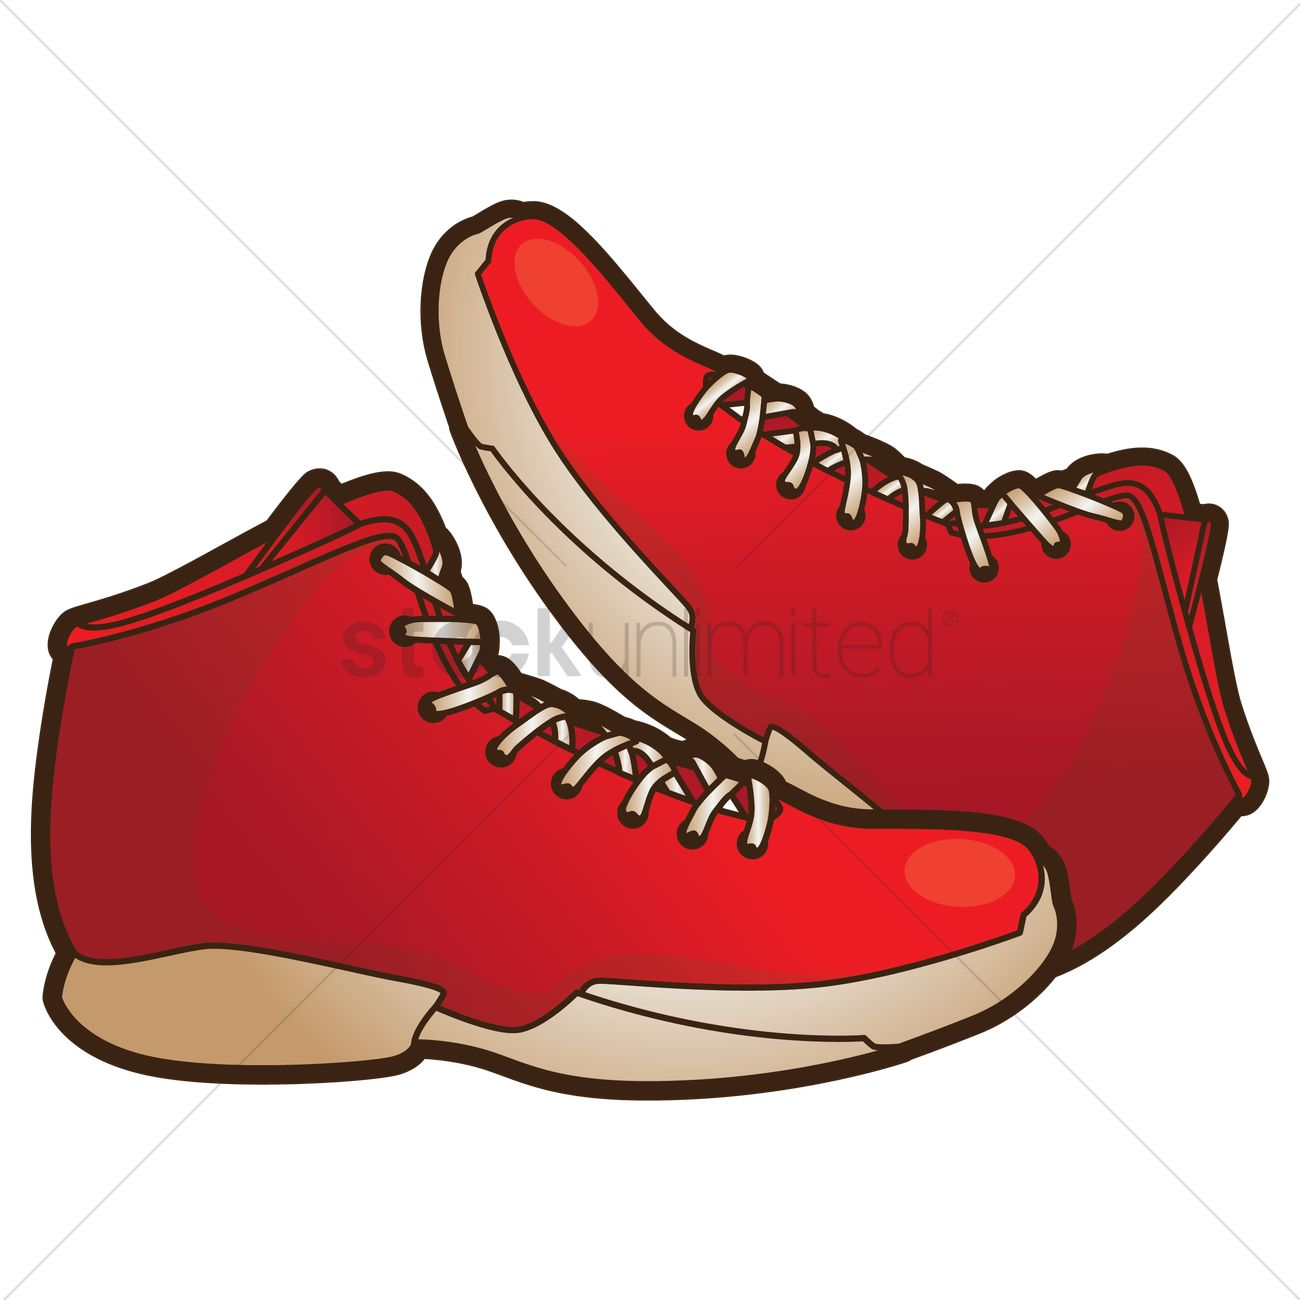 1300x1300 Free Basketball Shoes Vector Image